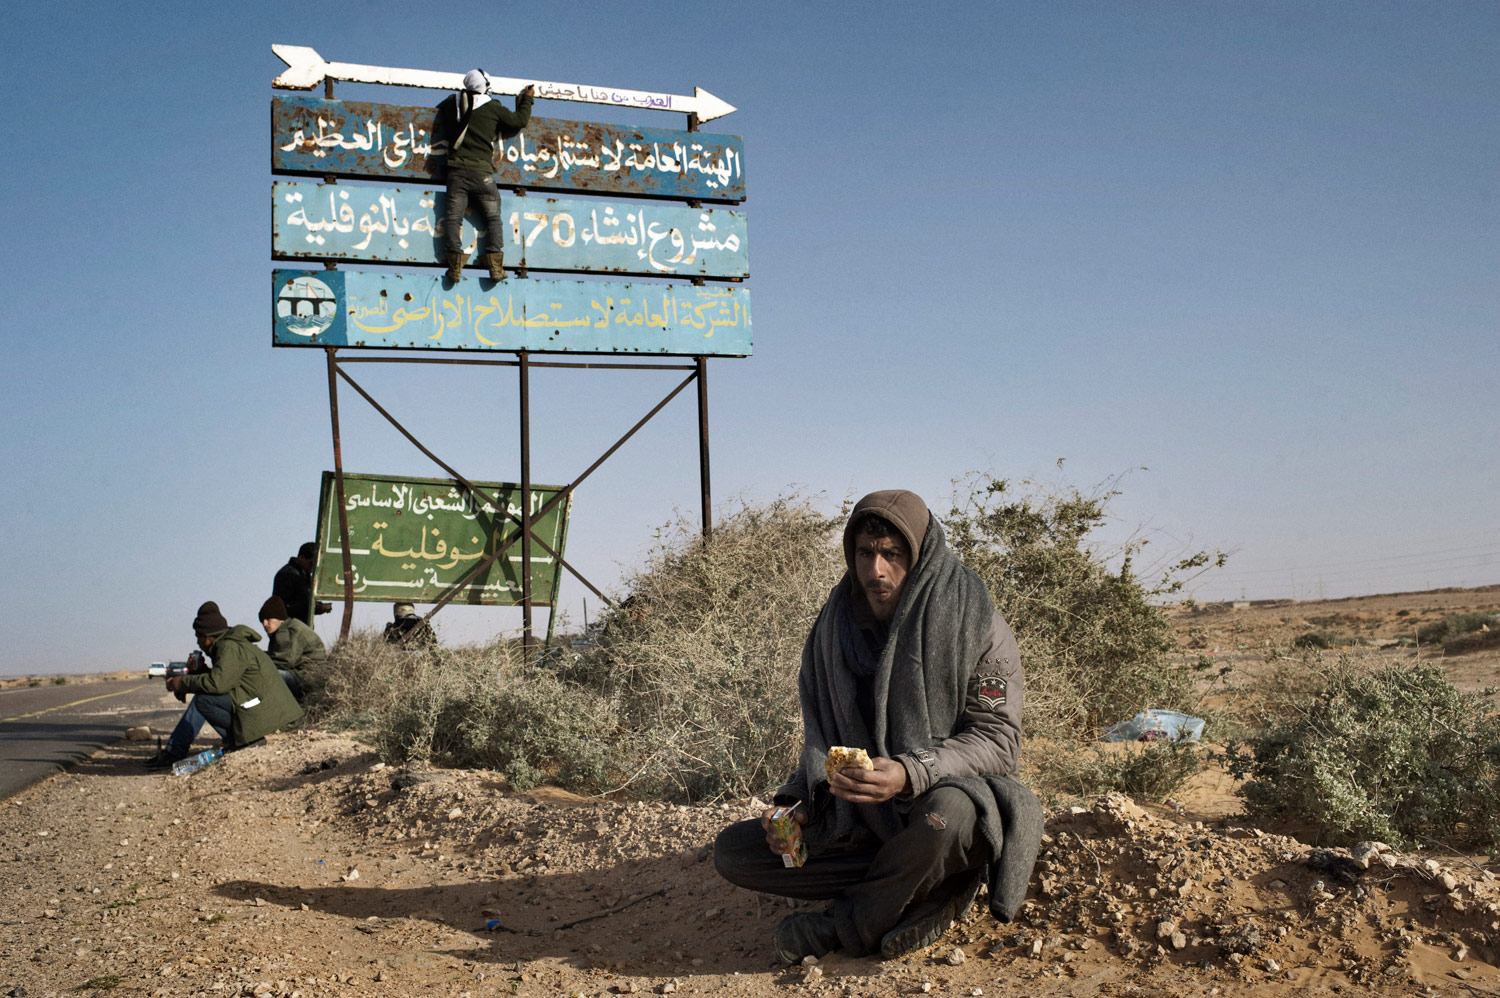 Libyan rebels outside the town of Bin Jawad, March 27, 2011.